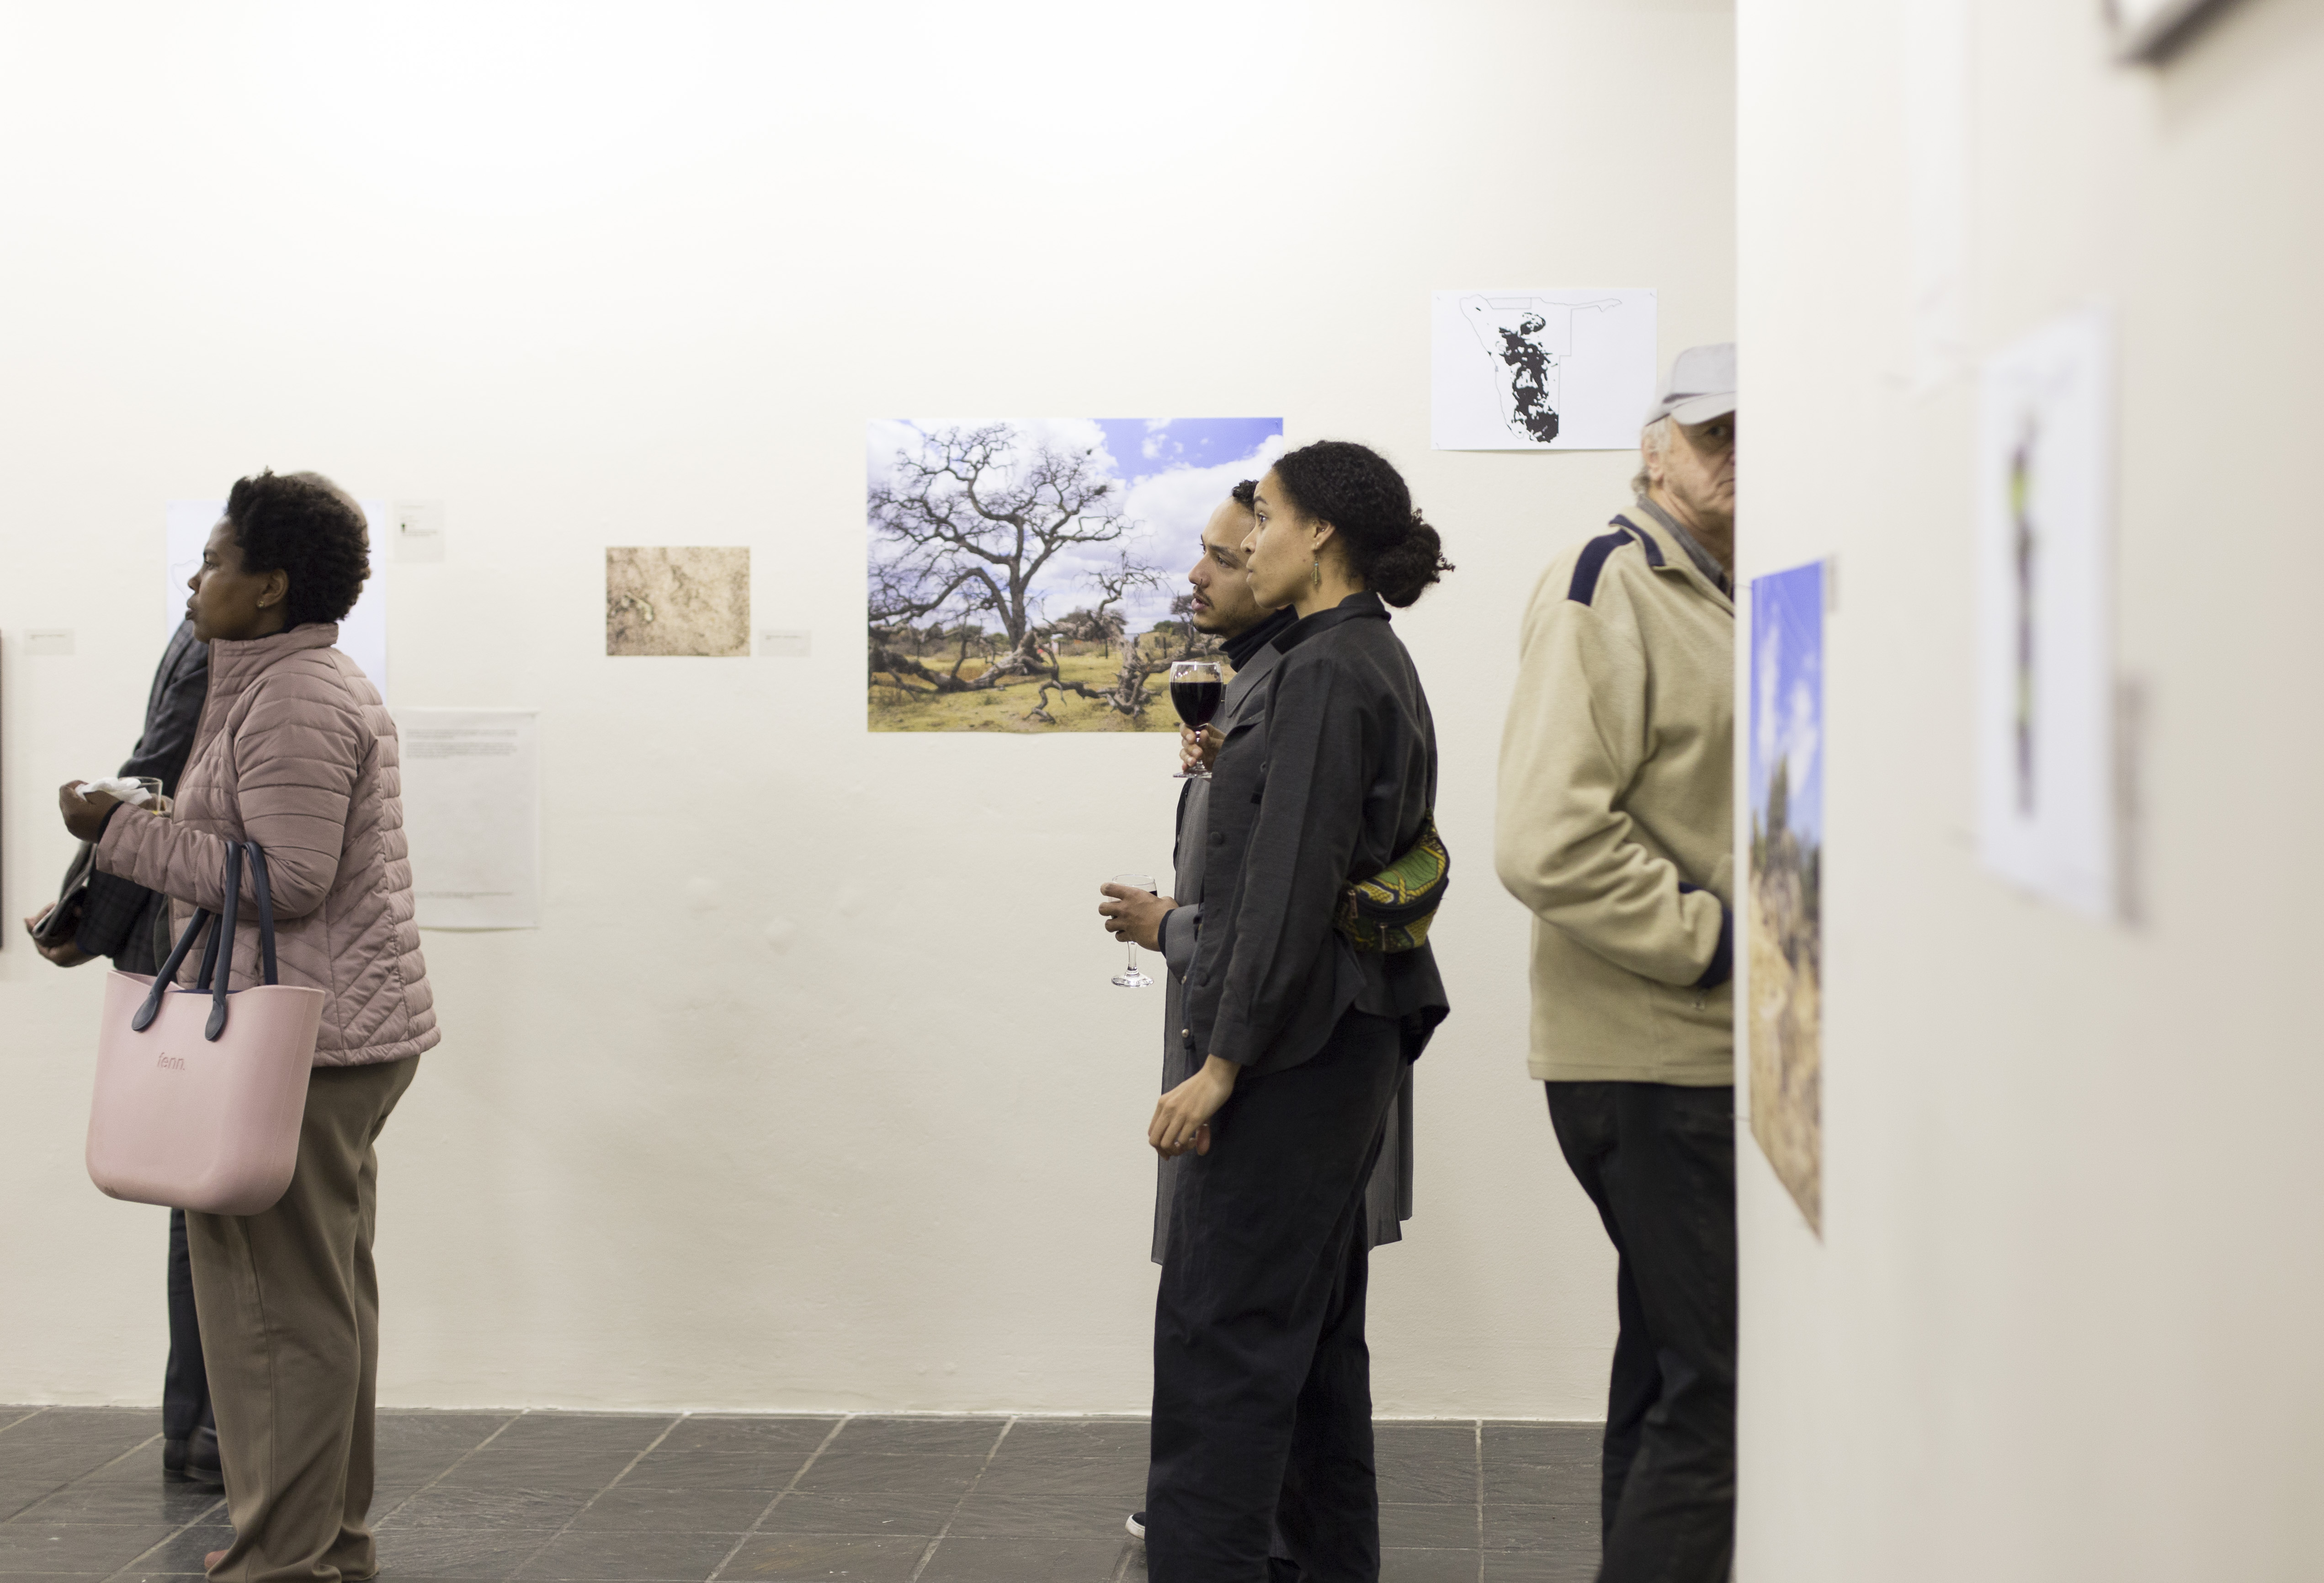 Unearthing_Exhibition_Opening_001.jpg